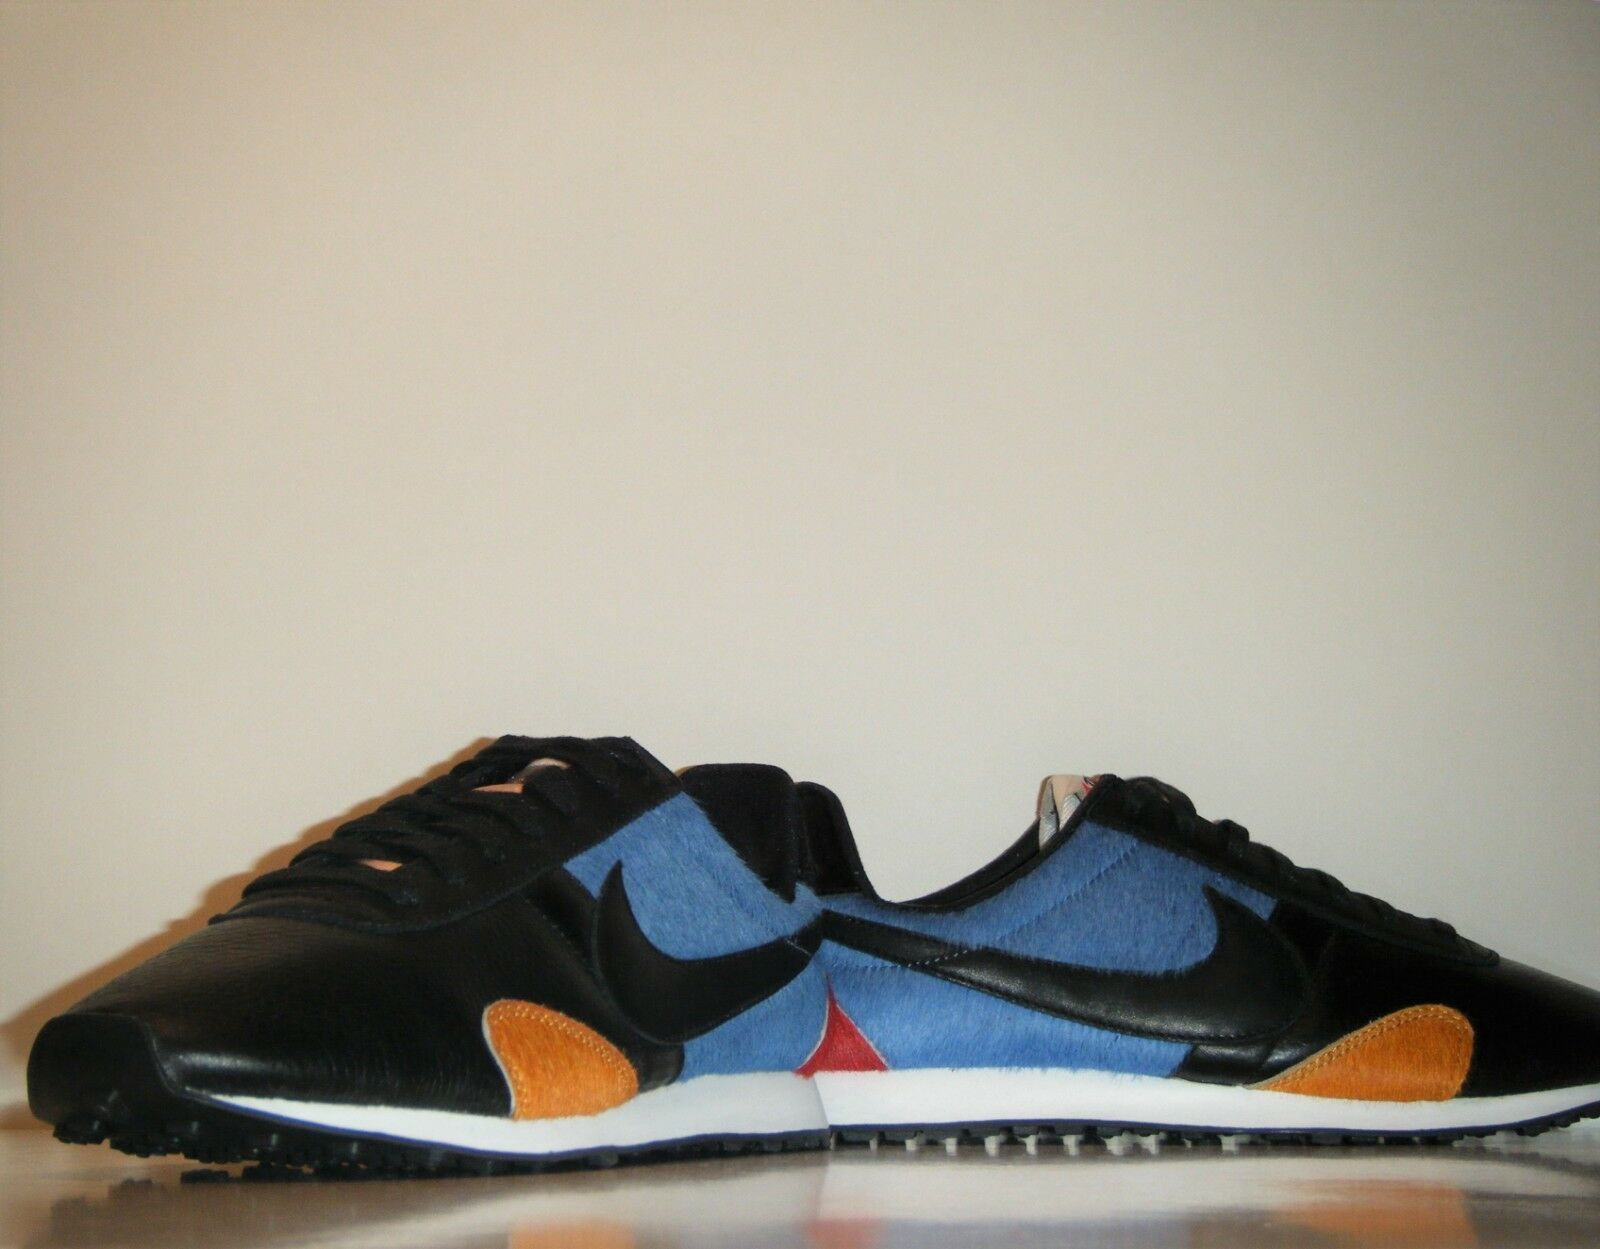 Damenschuhe Nike Pre Montreal Racer Look See 7 7 Promo Sample Sz. 7 7 Look ... b45a9b